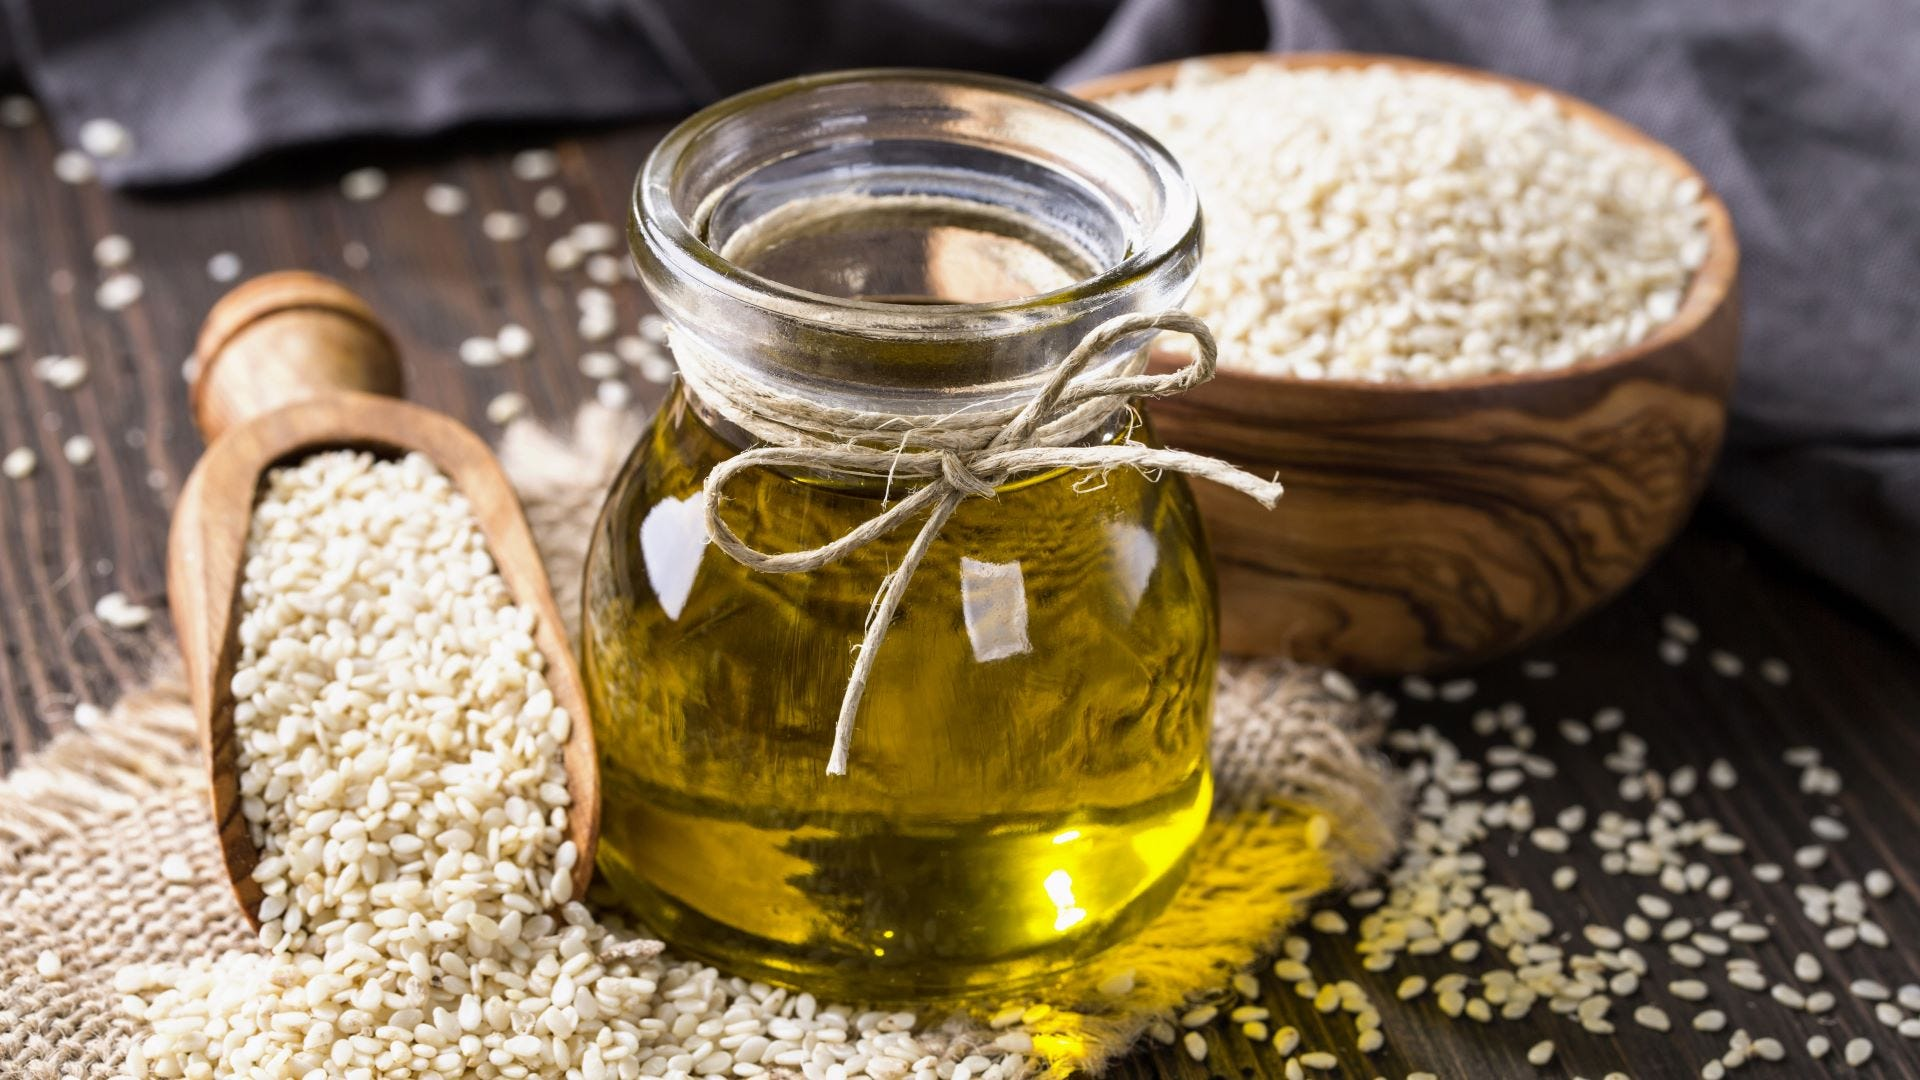 A jar of sesame seed oil surrounded by sesame seeds.